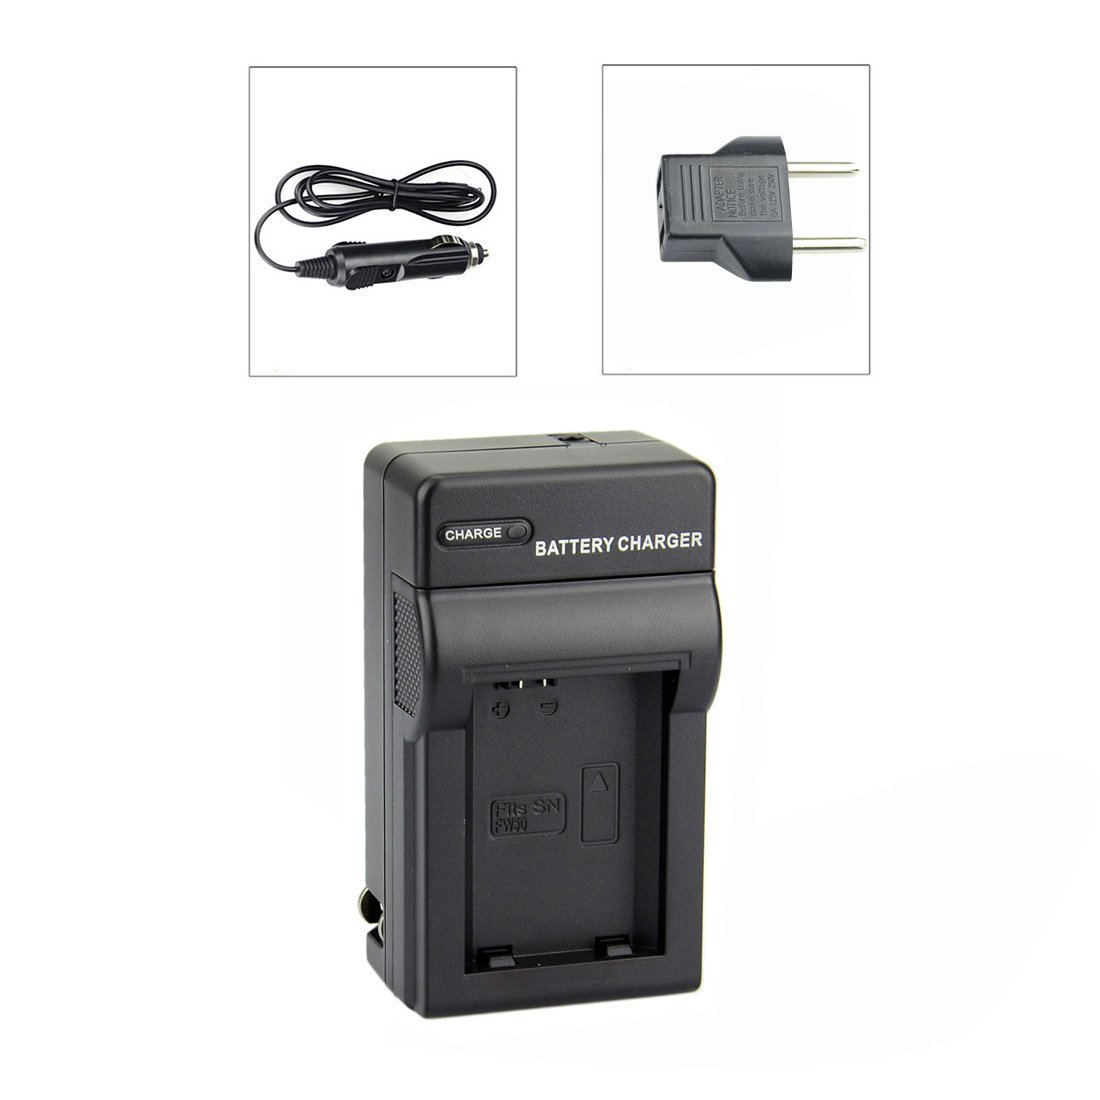 DSTE® NP-FW50 DC107 Travel Charger Kit for Sony ILCE-5100L A5100 A6000 QX1 NEX-C3 F3 3N 5C Digital Camera Battery